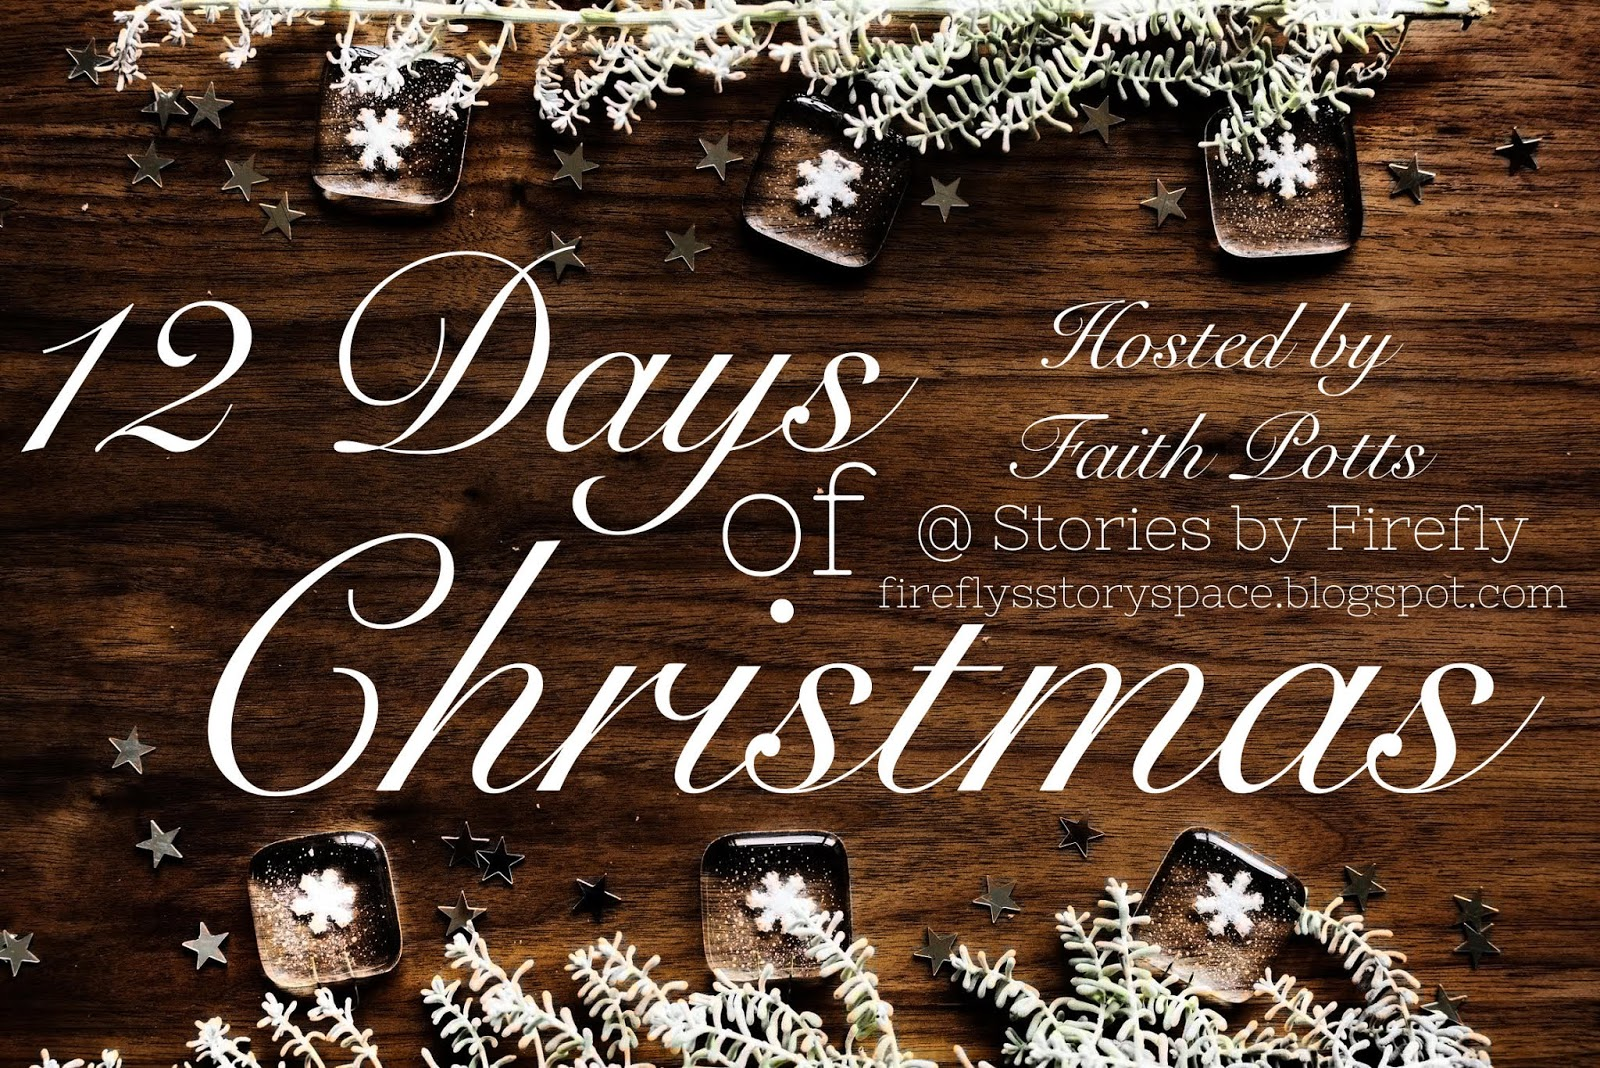 Qadash - Set Apart, for Him: 12 Days of Christmas - Hallelujah - What does it mean?